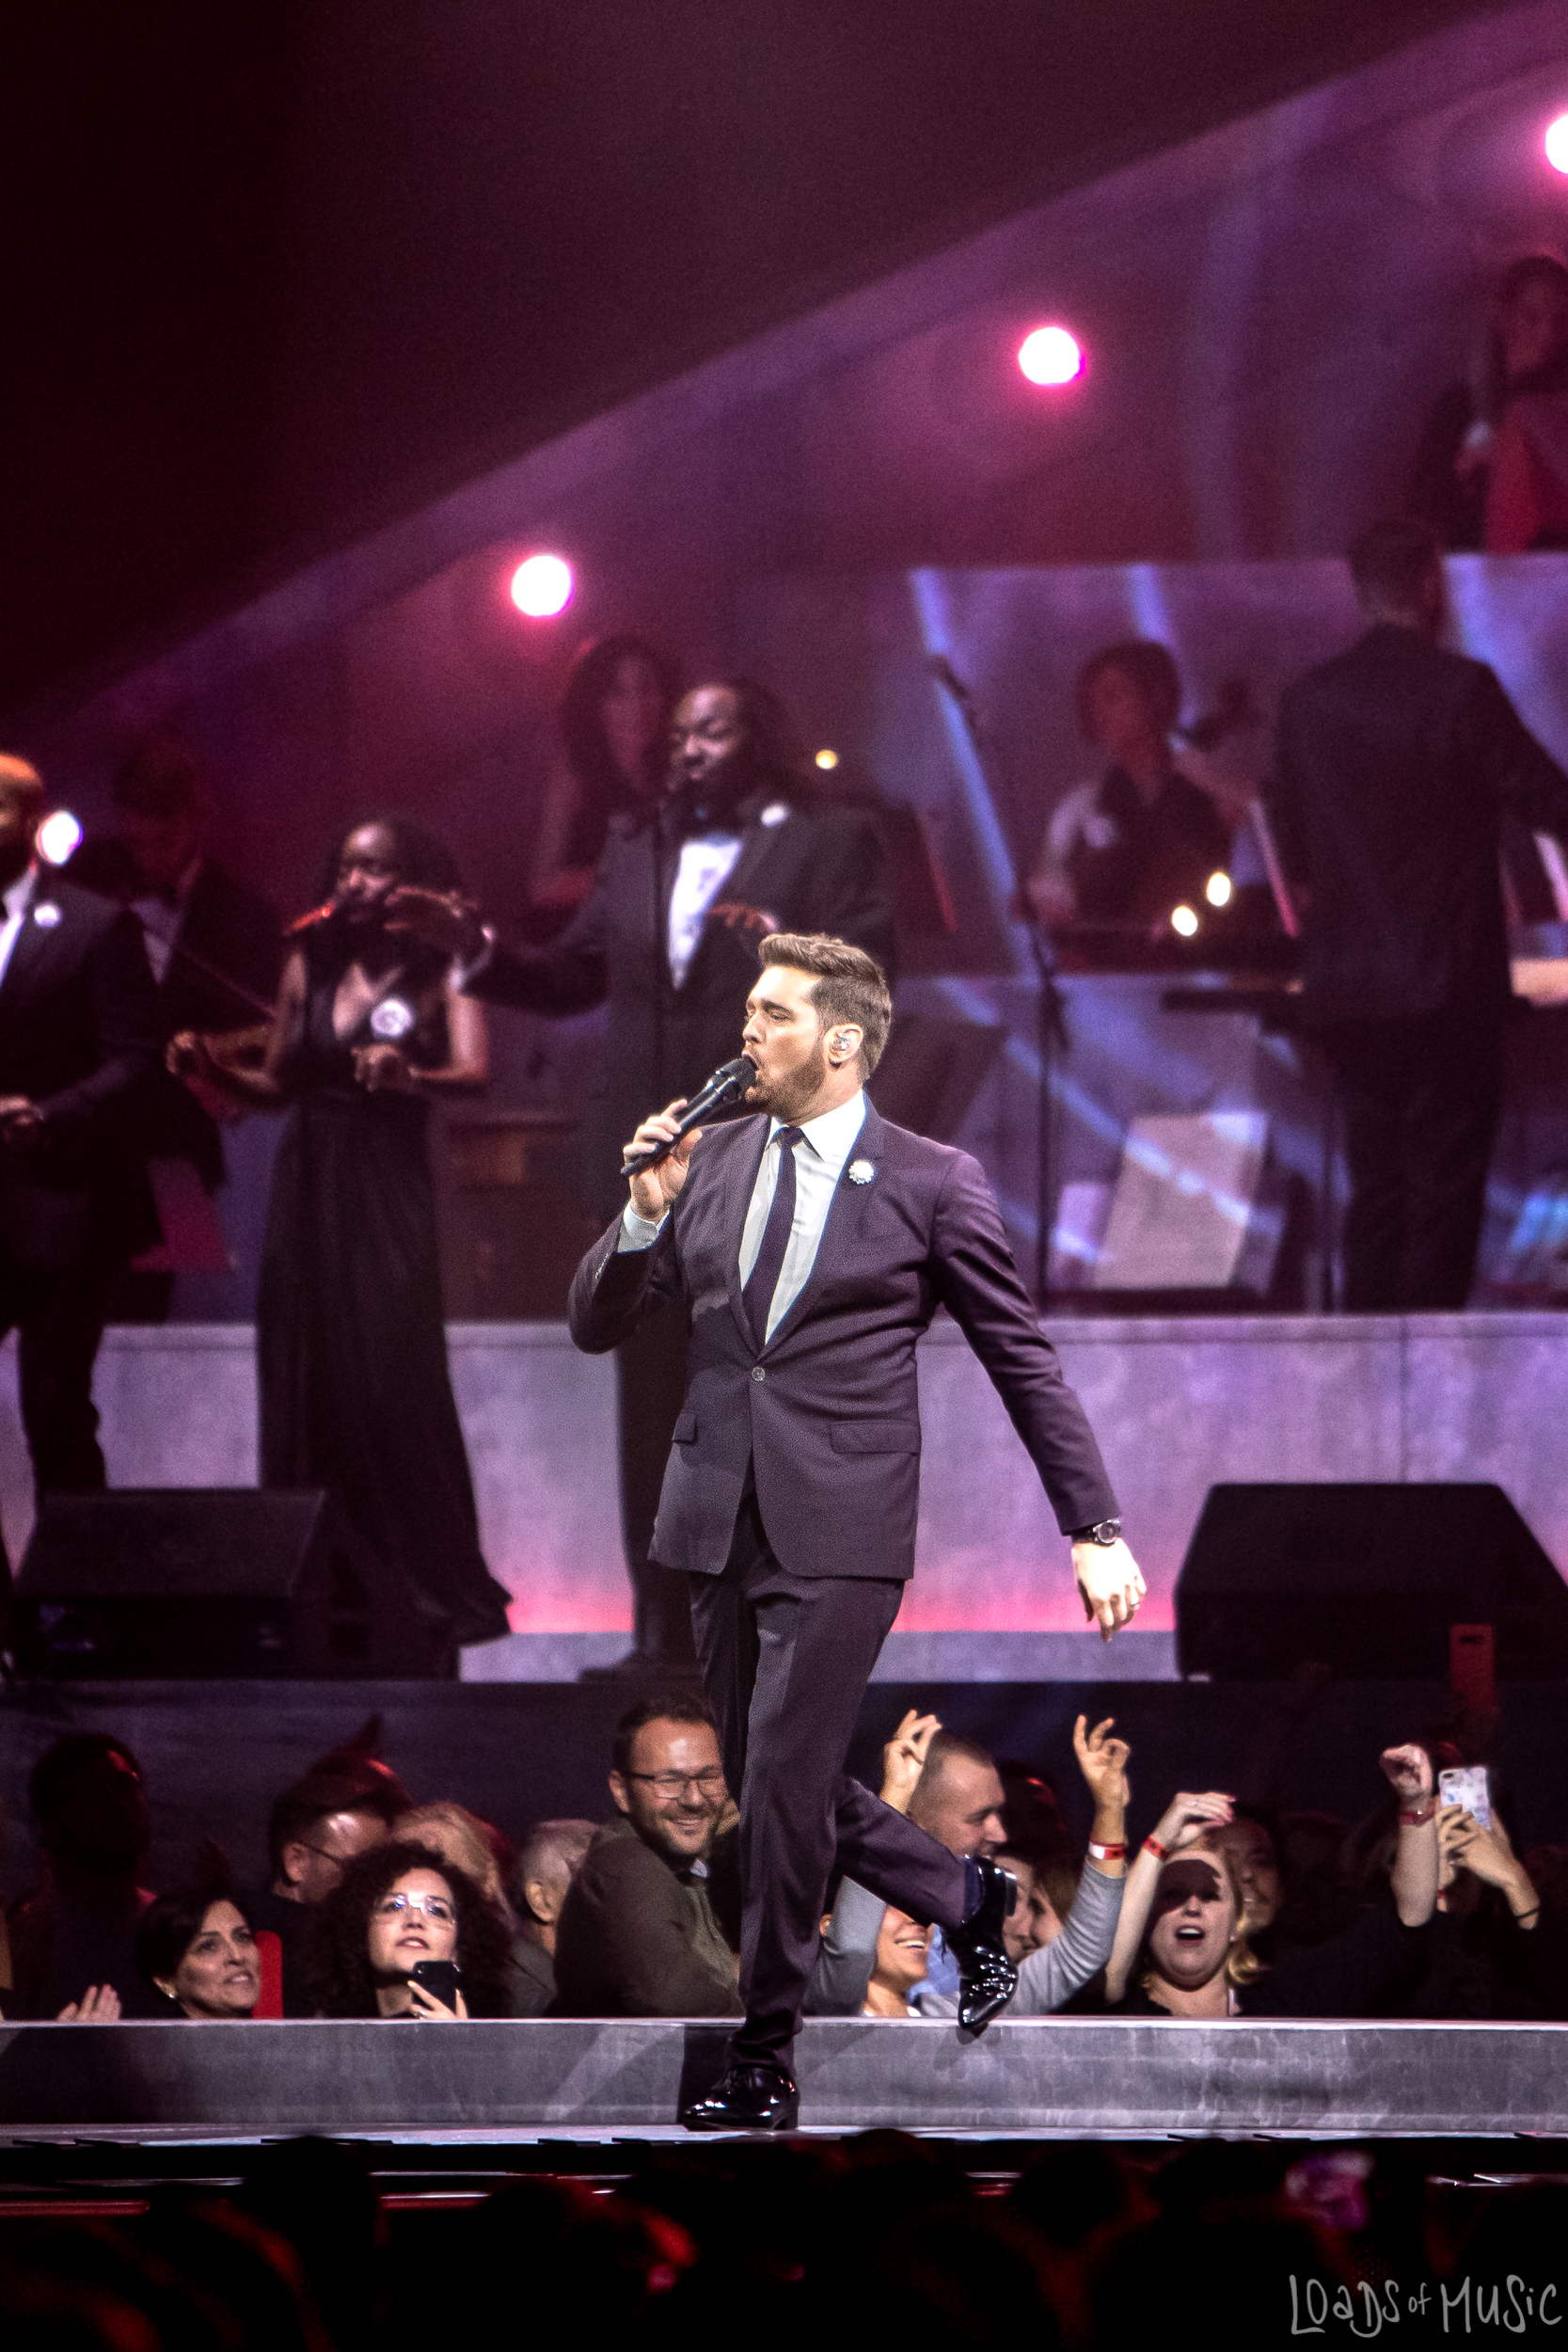 Michael_Buble_Hallenstadion_MB_4